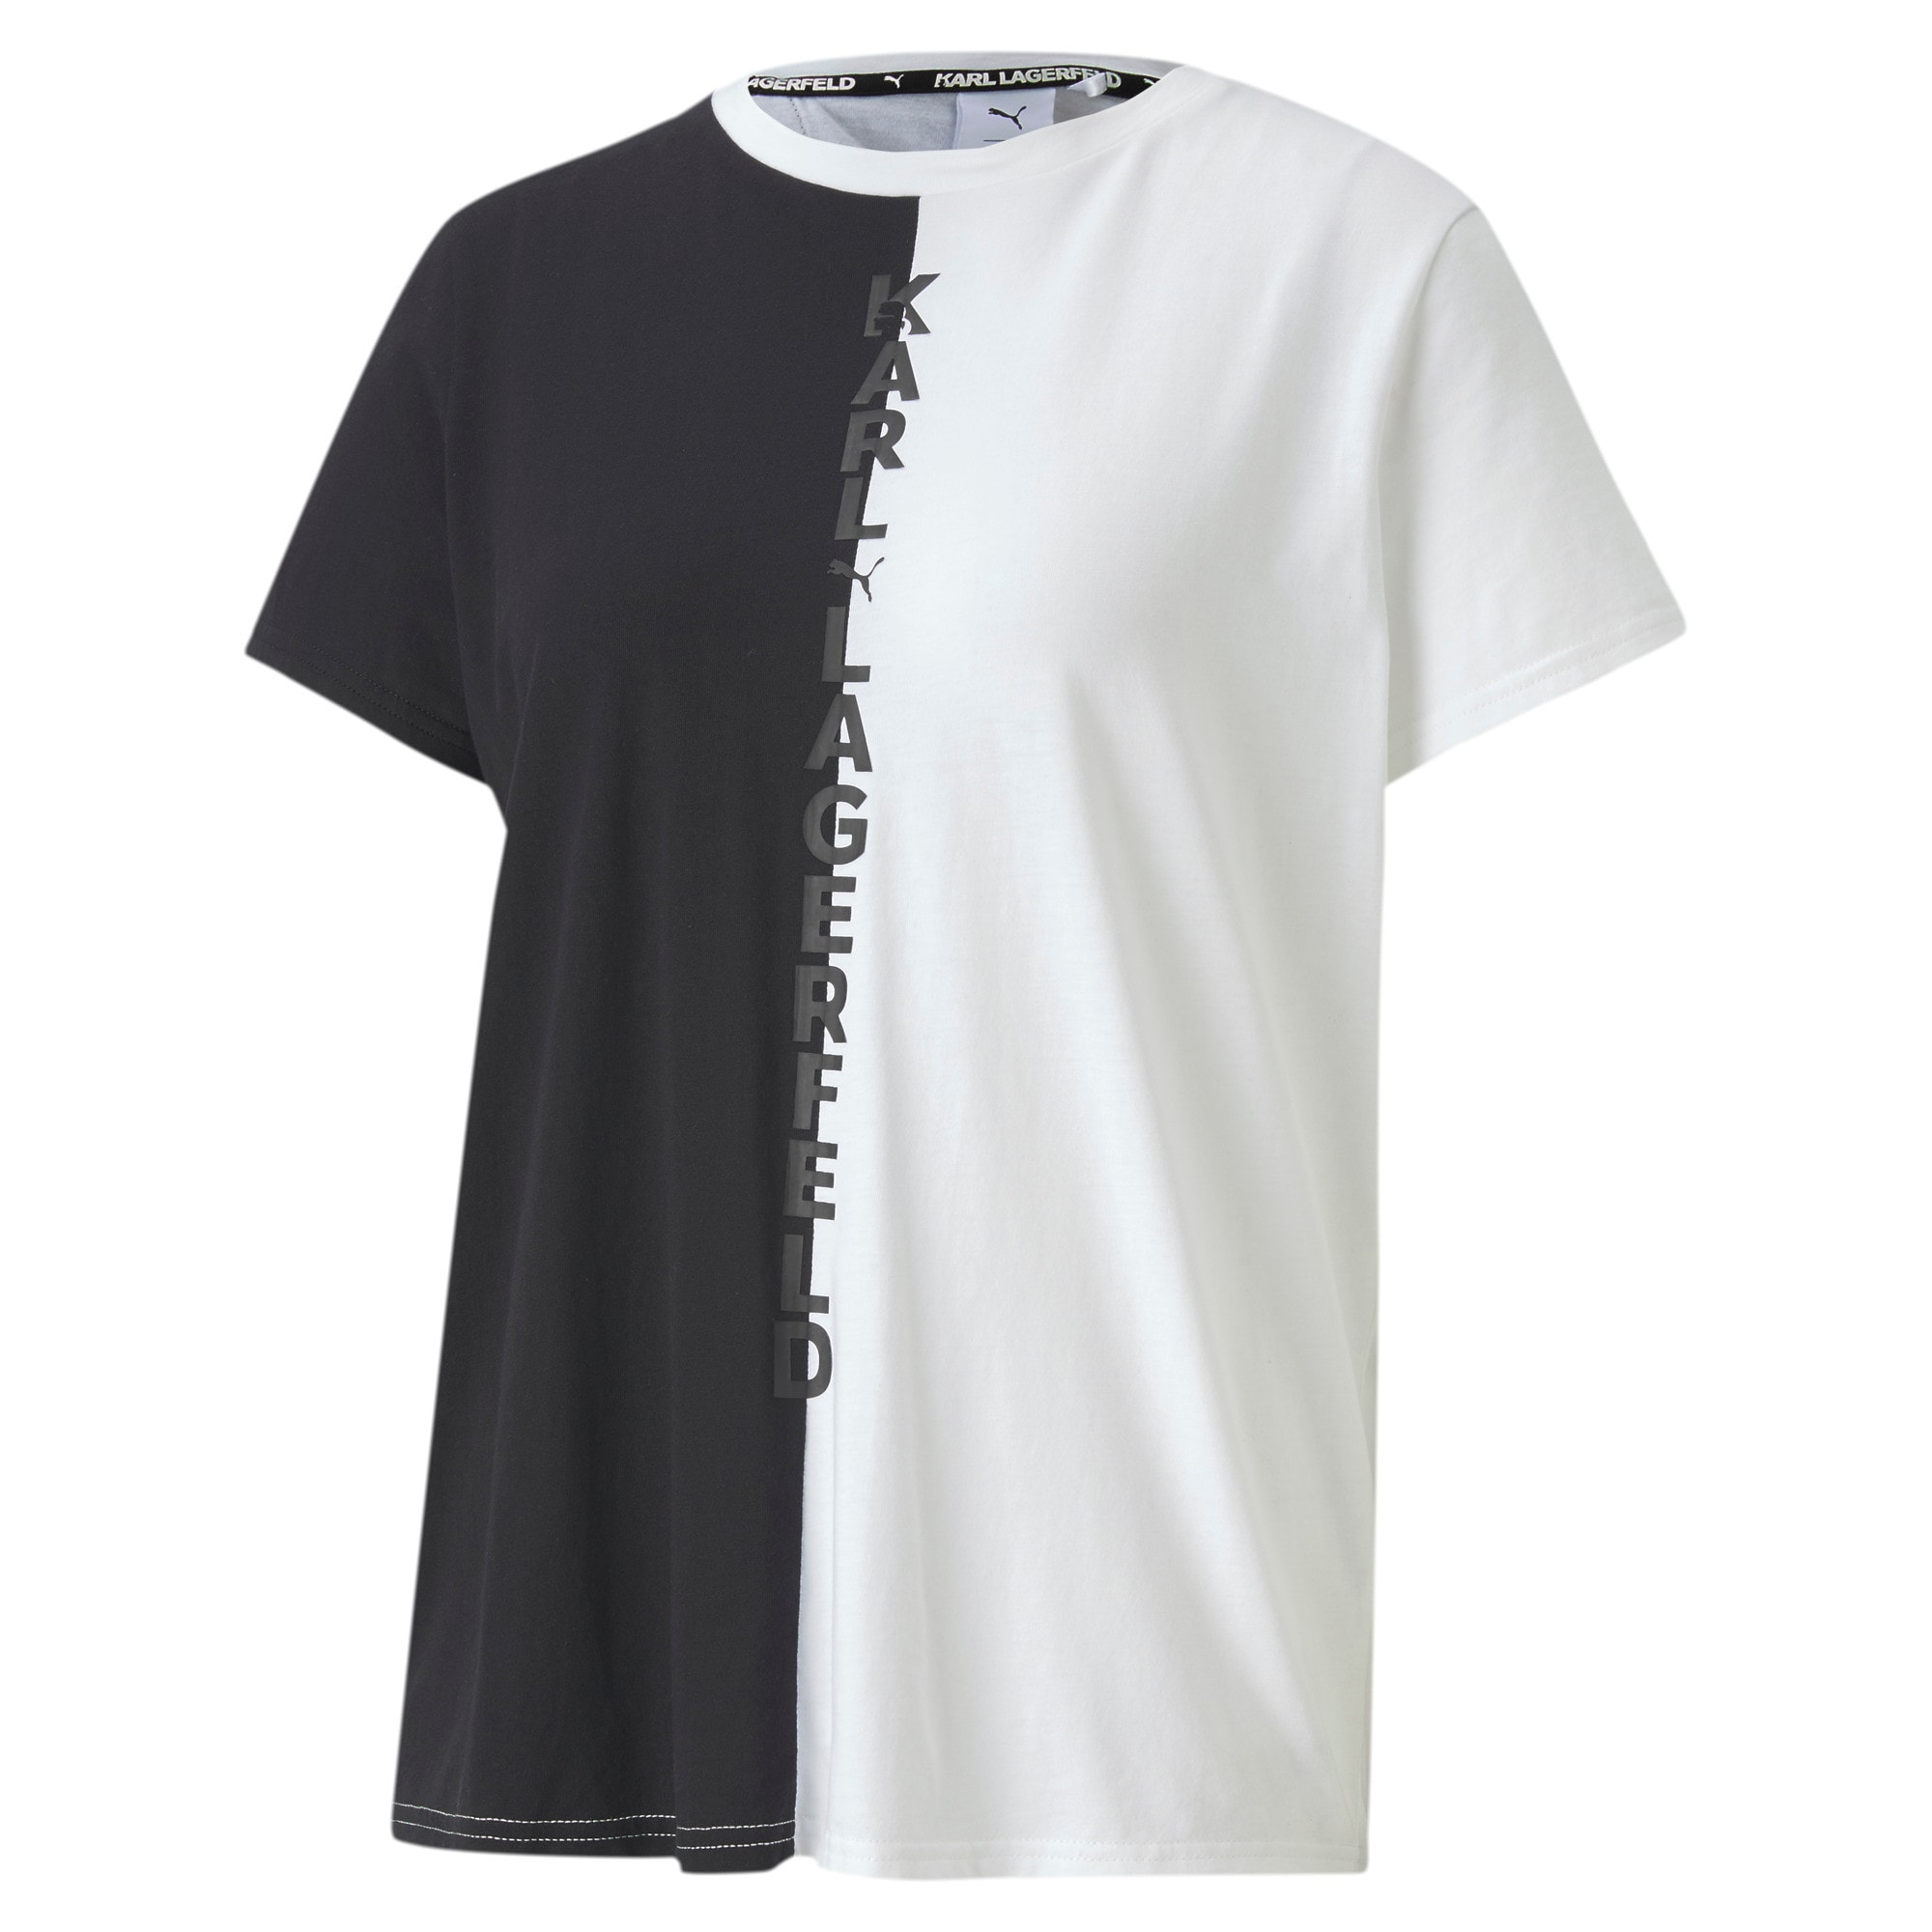 Thumbnail 1 of PUMA x KARL LAGERFELD Women's Open Back Tee, Puma Black, medium